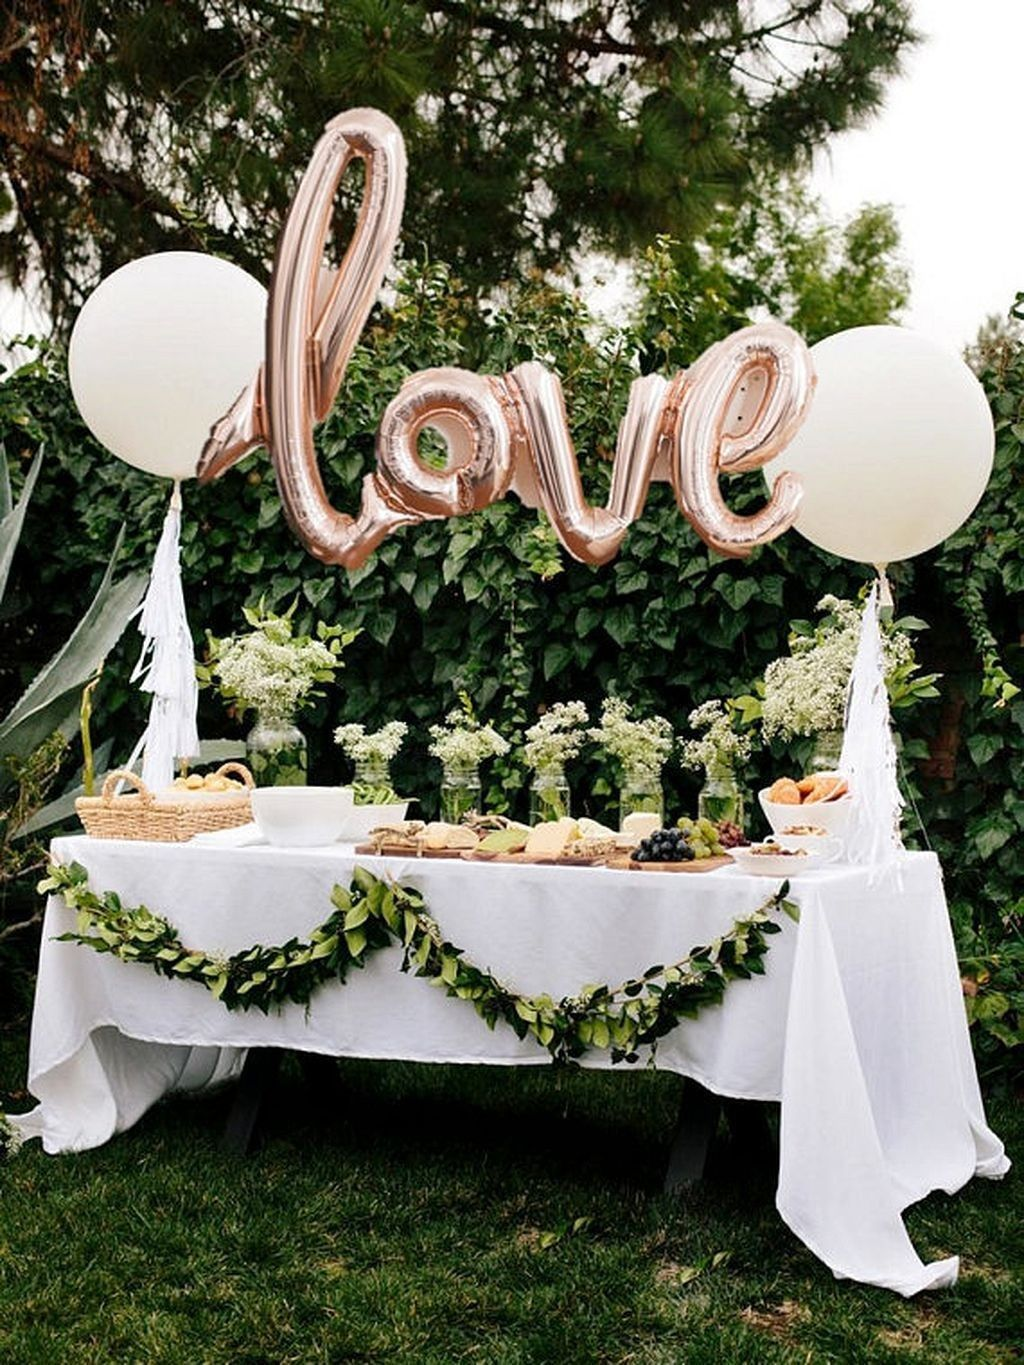 Wedding reception on  budget tables decorations outdoor also pin by tessa owen bridal shower board in pinterest rh